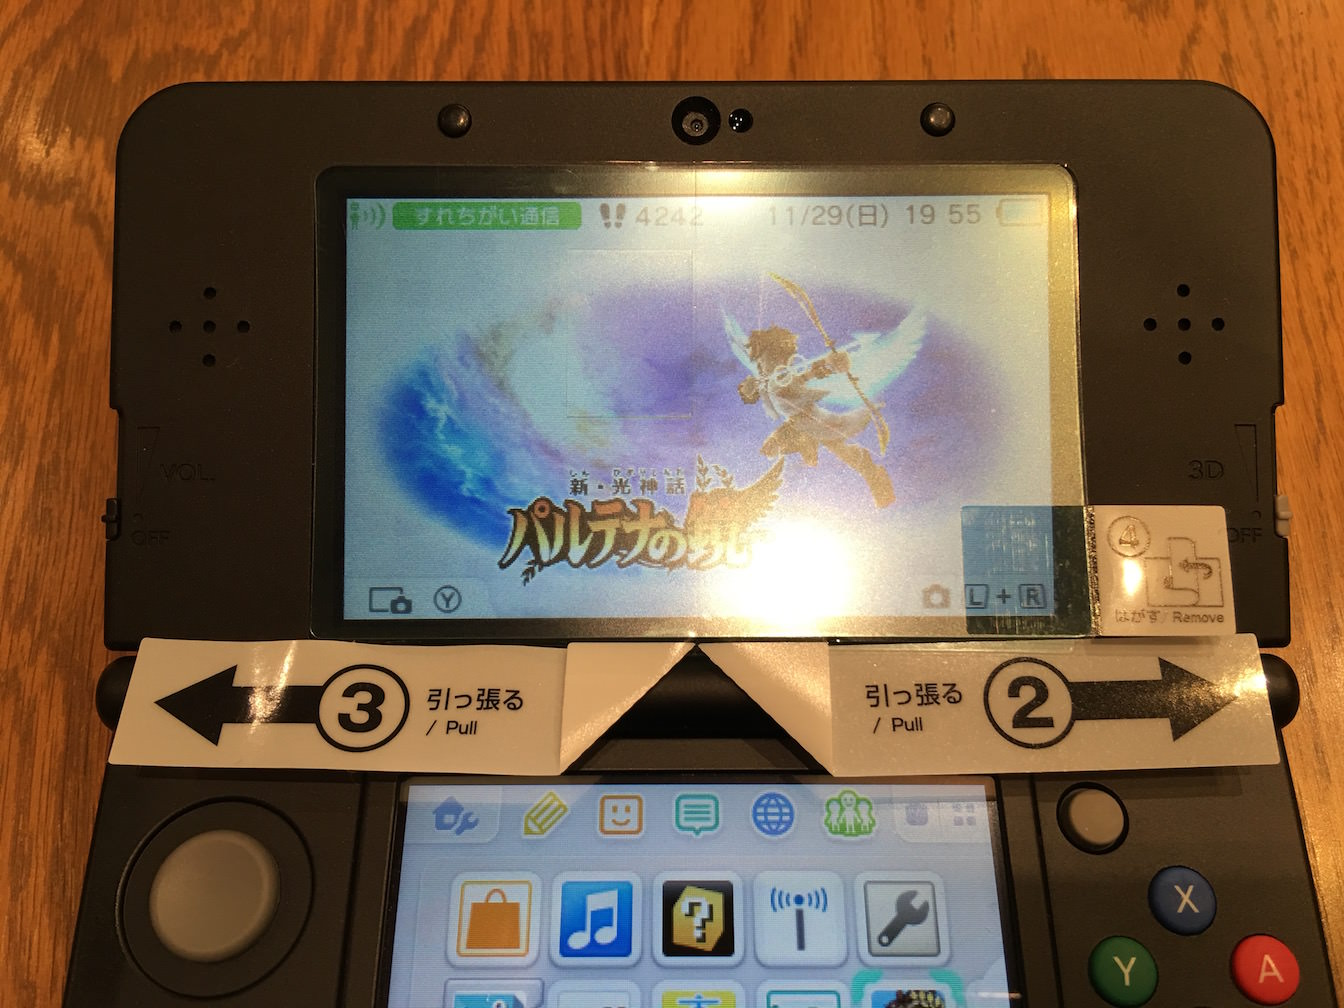 Review of zero pita filter for new nintendo 3ds 5